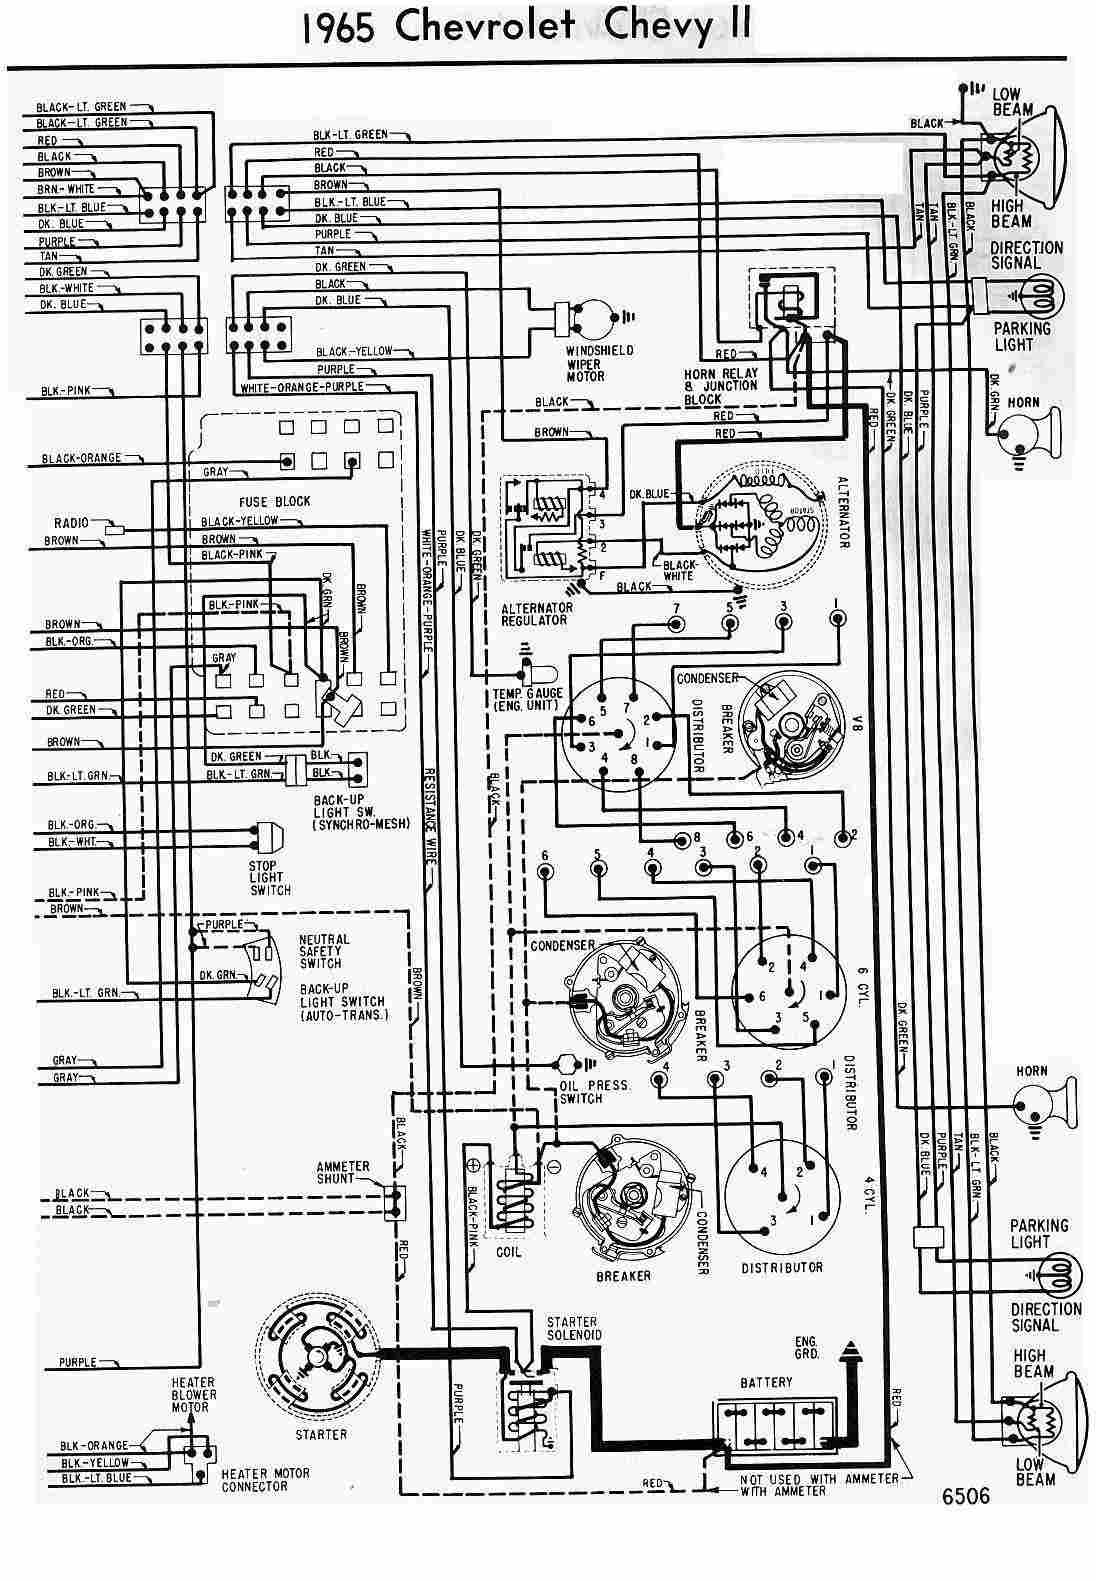 1972 camaro wiring diagram free detailed wiring diagram 88 camaro engine wire diagrams 1970 camaro wiring diagram as well chevy [ 1096 x 1581 Pixel ]